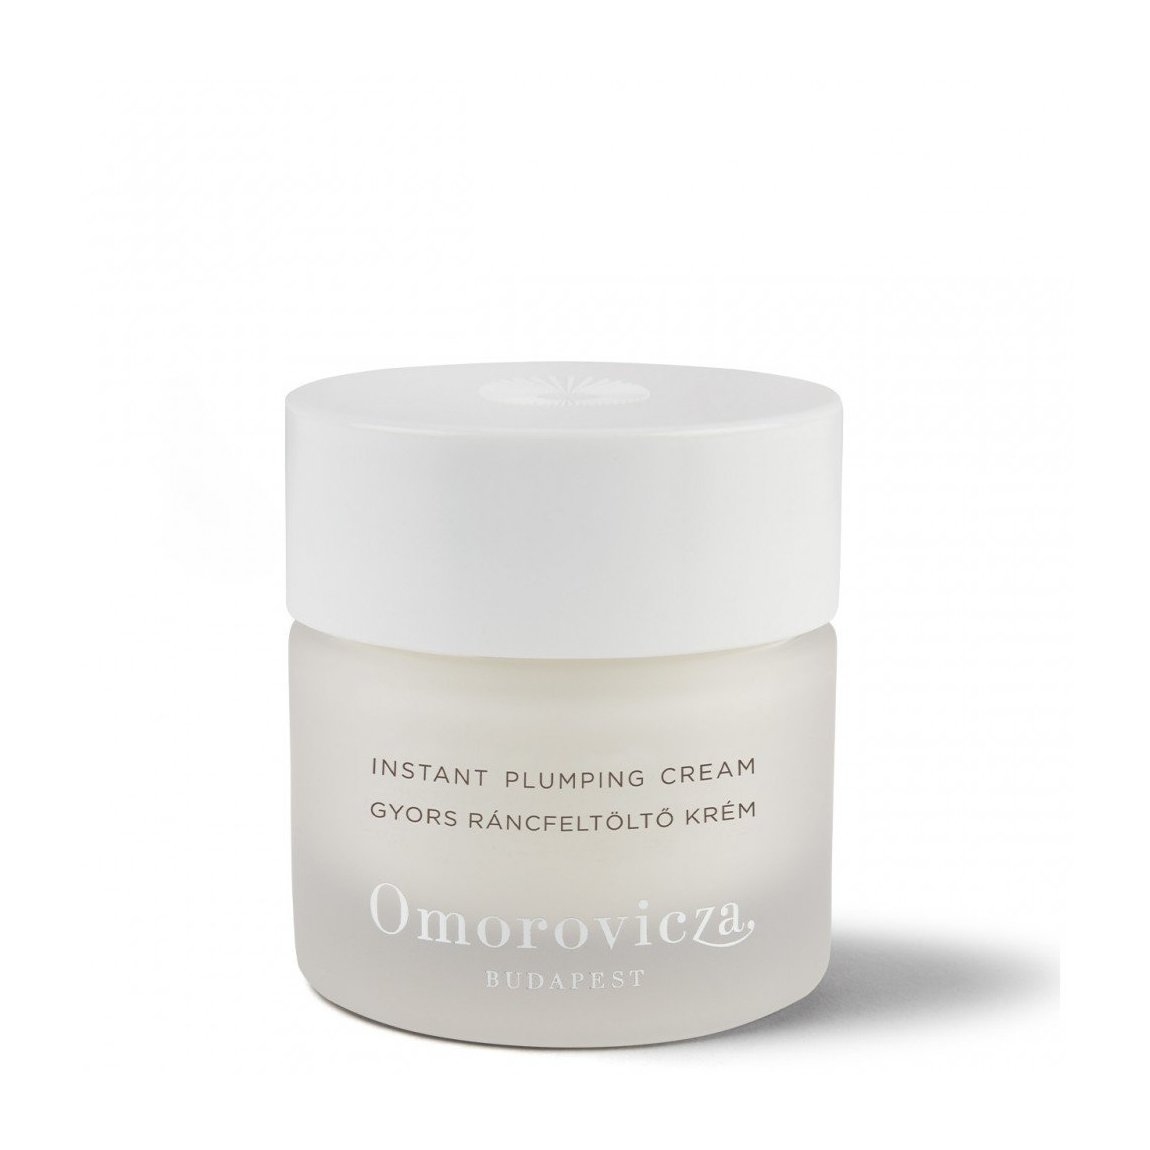 Omorovicza Instant Plumping Cream product smear.